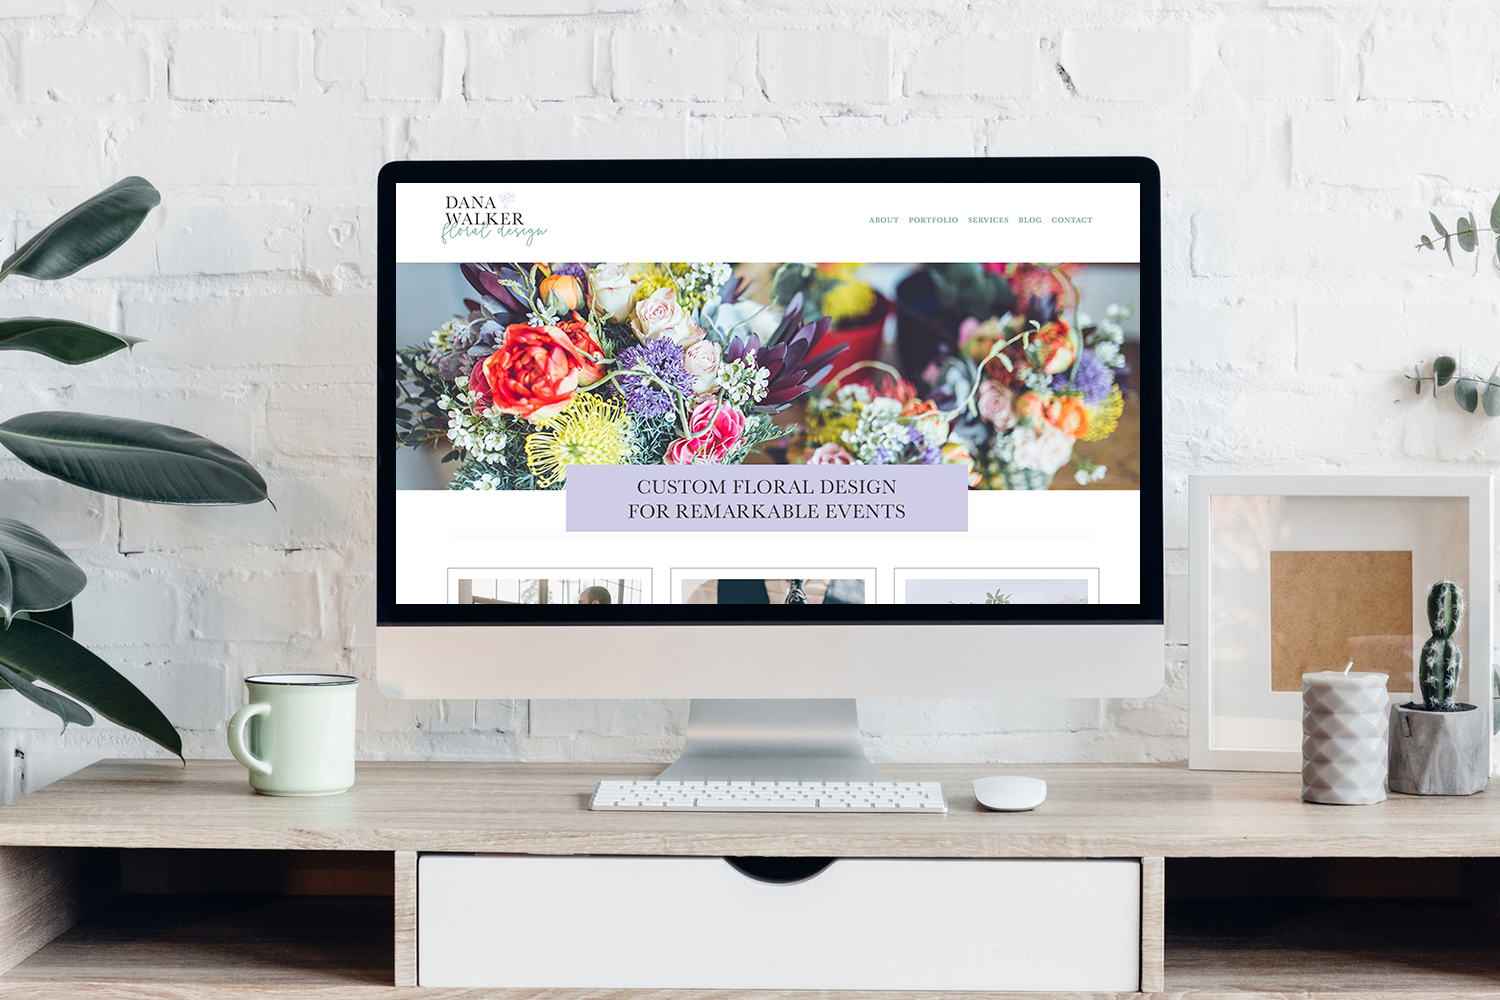 Floral design website design on Squarespace